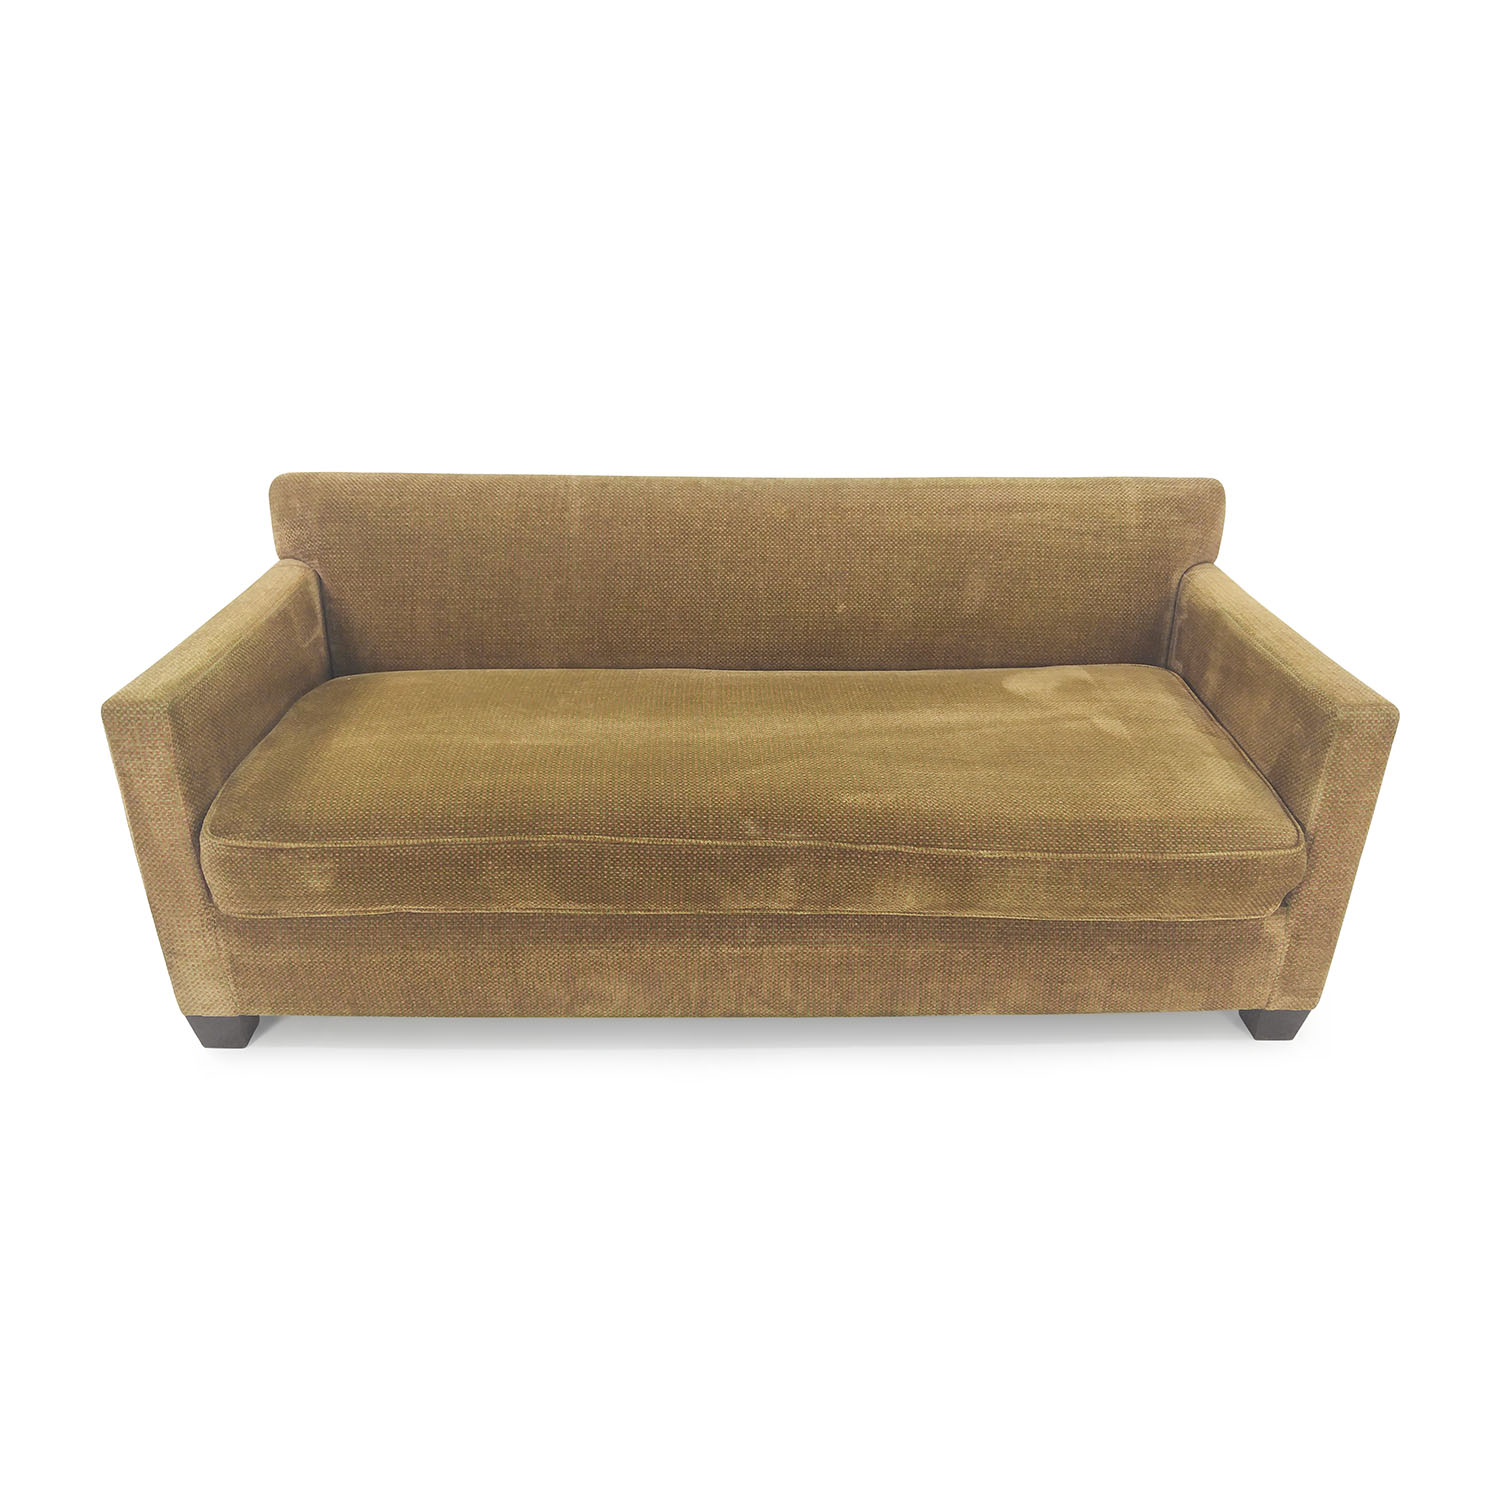 revolving chair manufacturer in lahore home goods wooden sofa with cushion price decor photos gallery